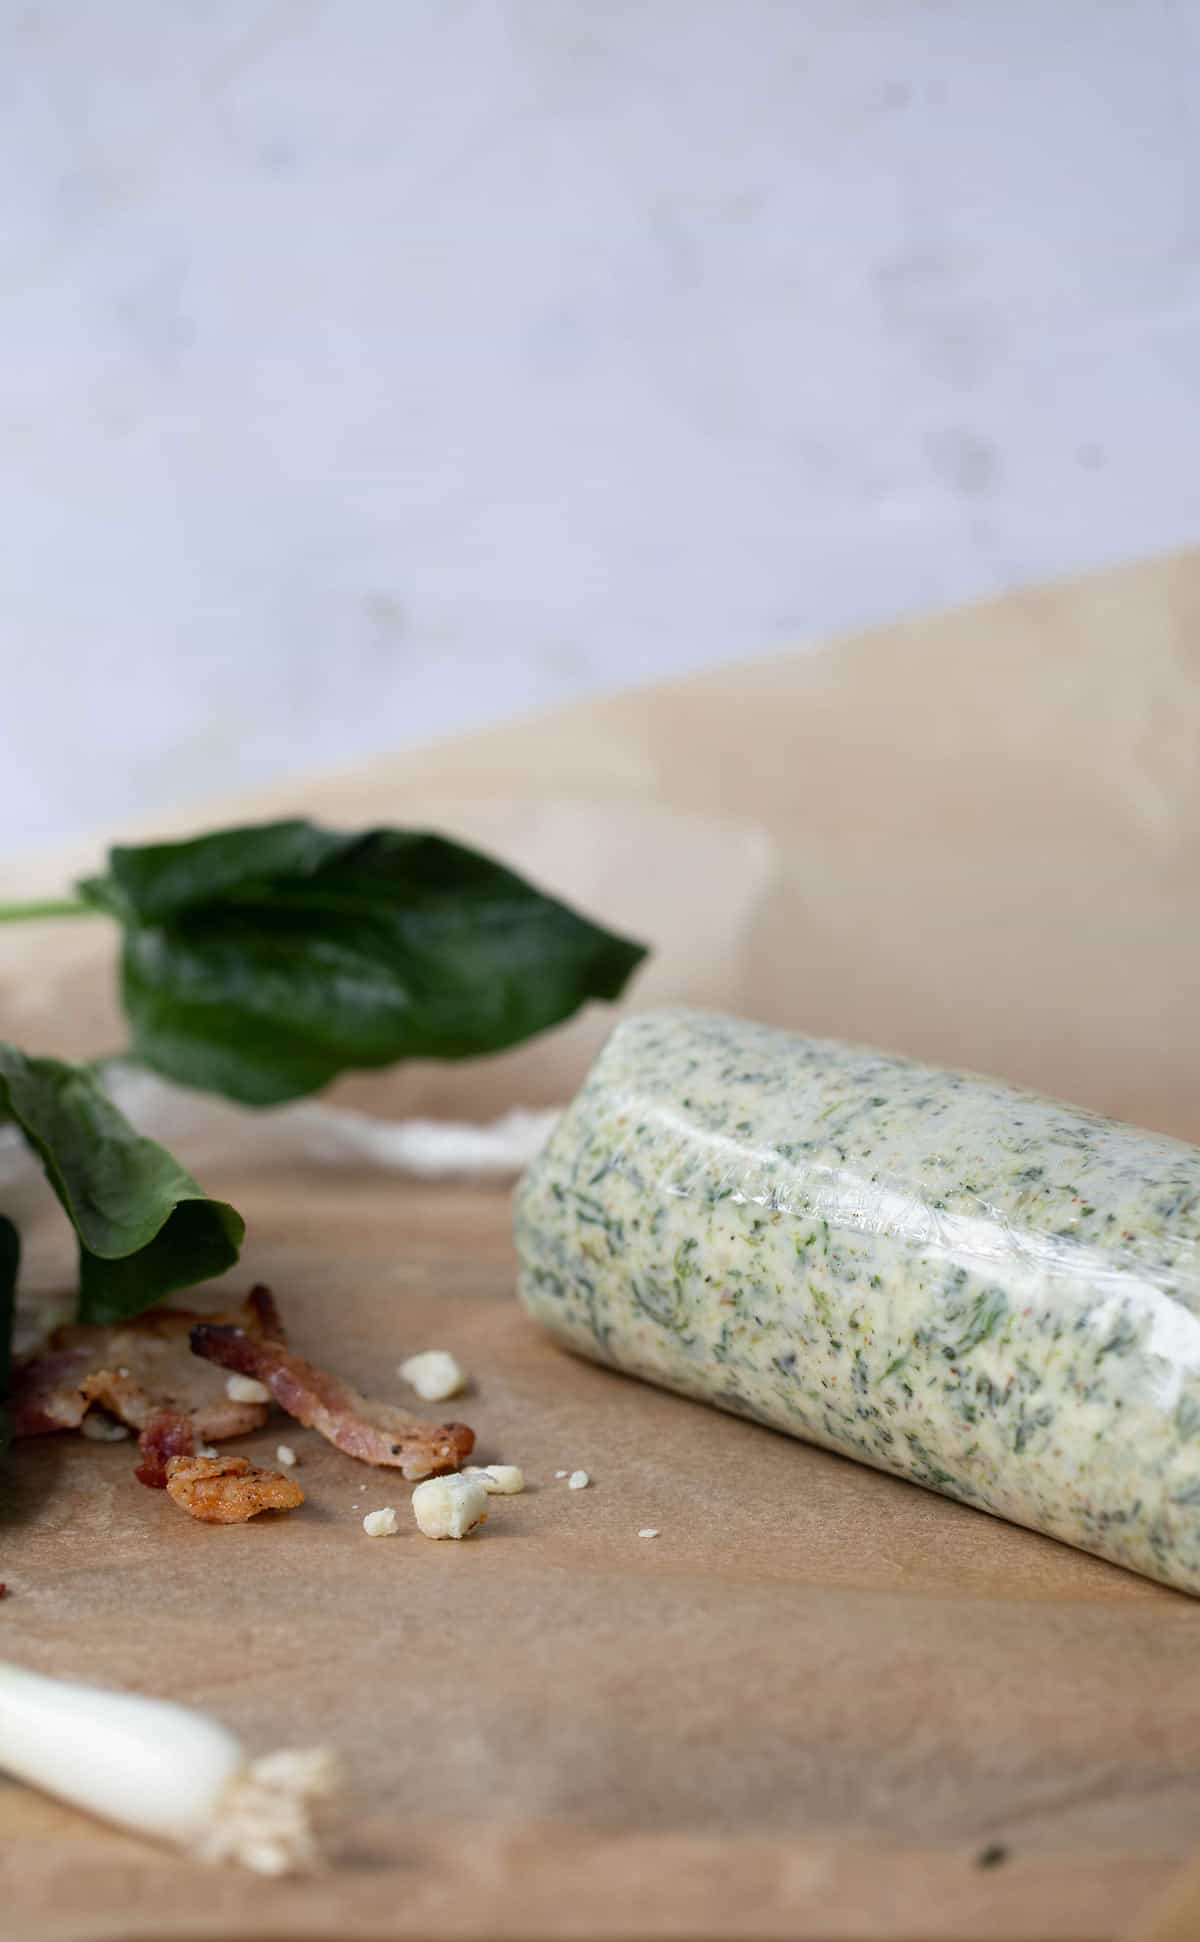 Bacon, spinach, blue cheese compound butter wrapped tightly in plastic wrap